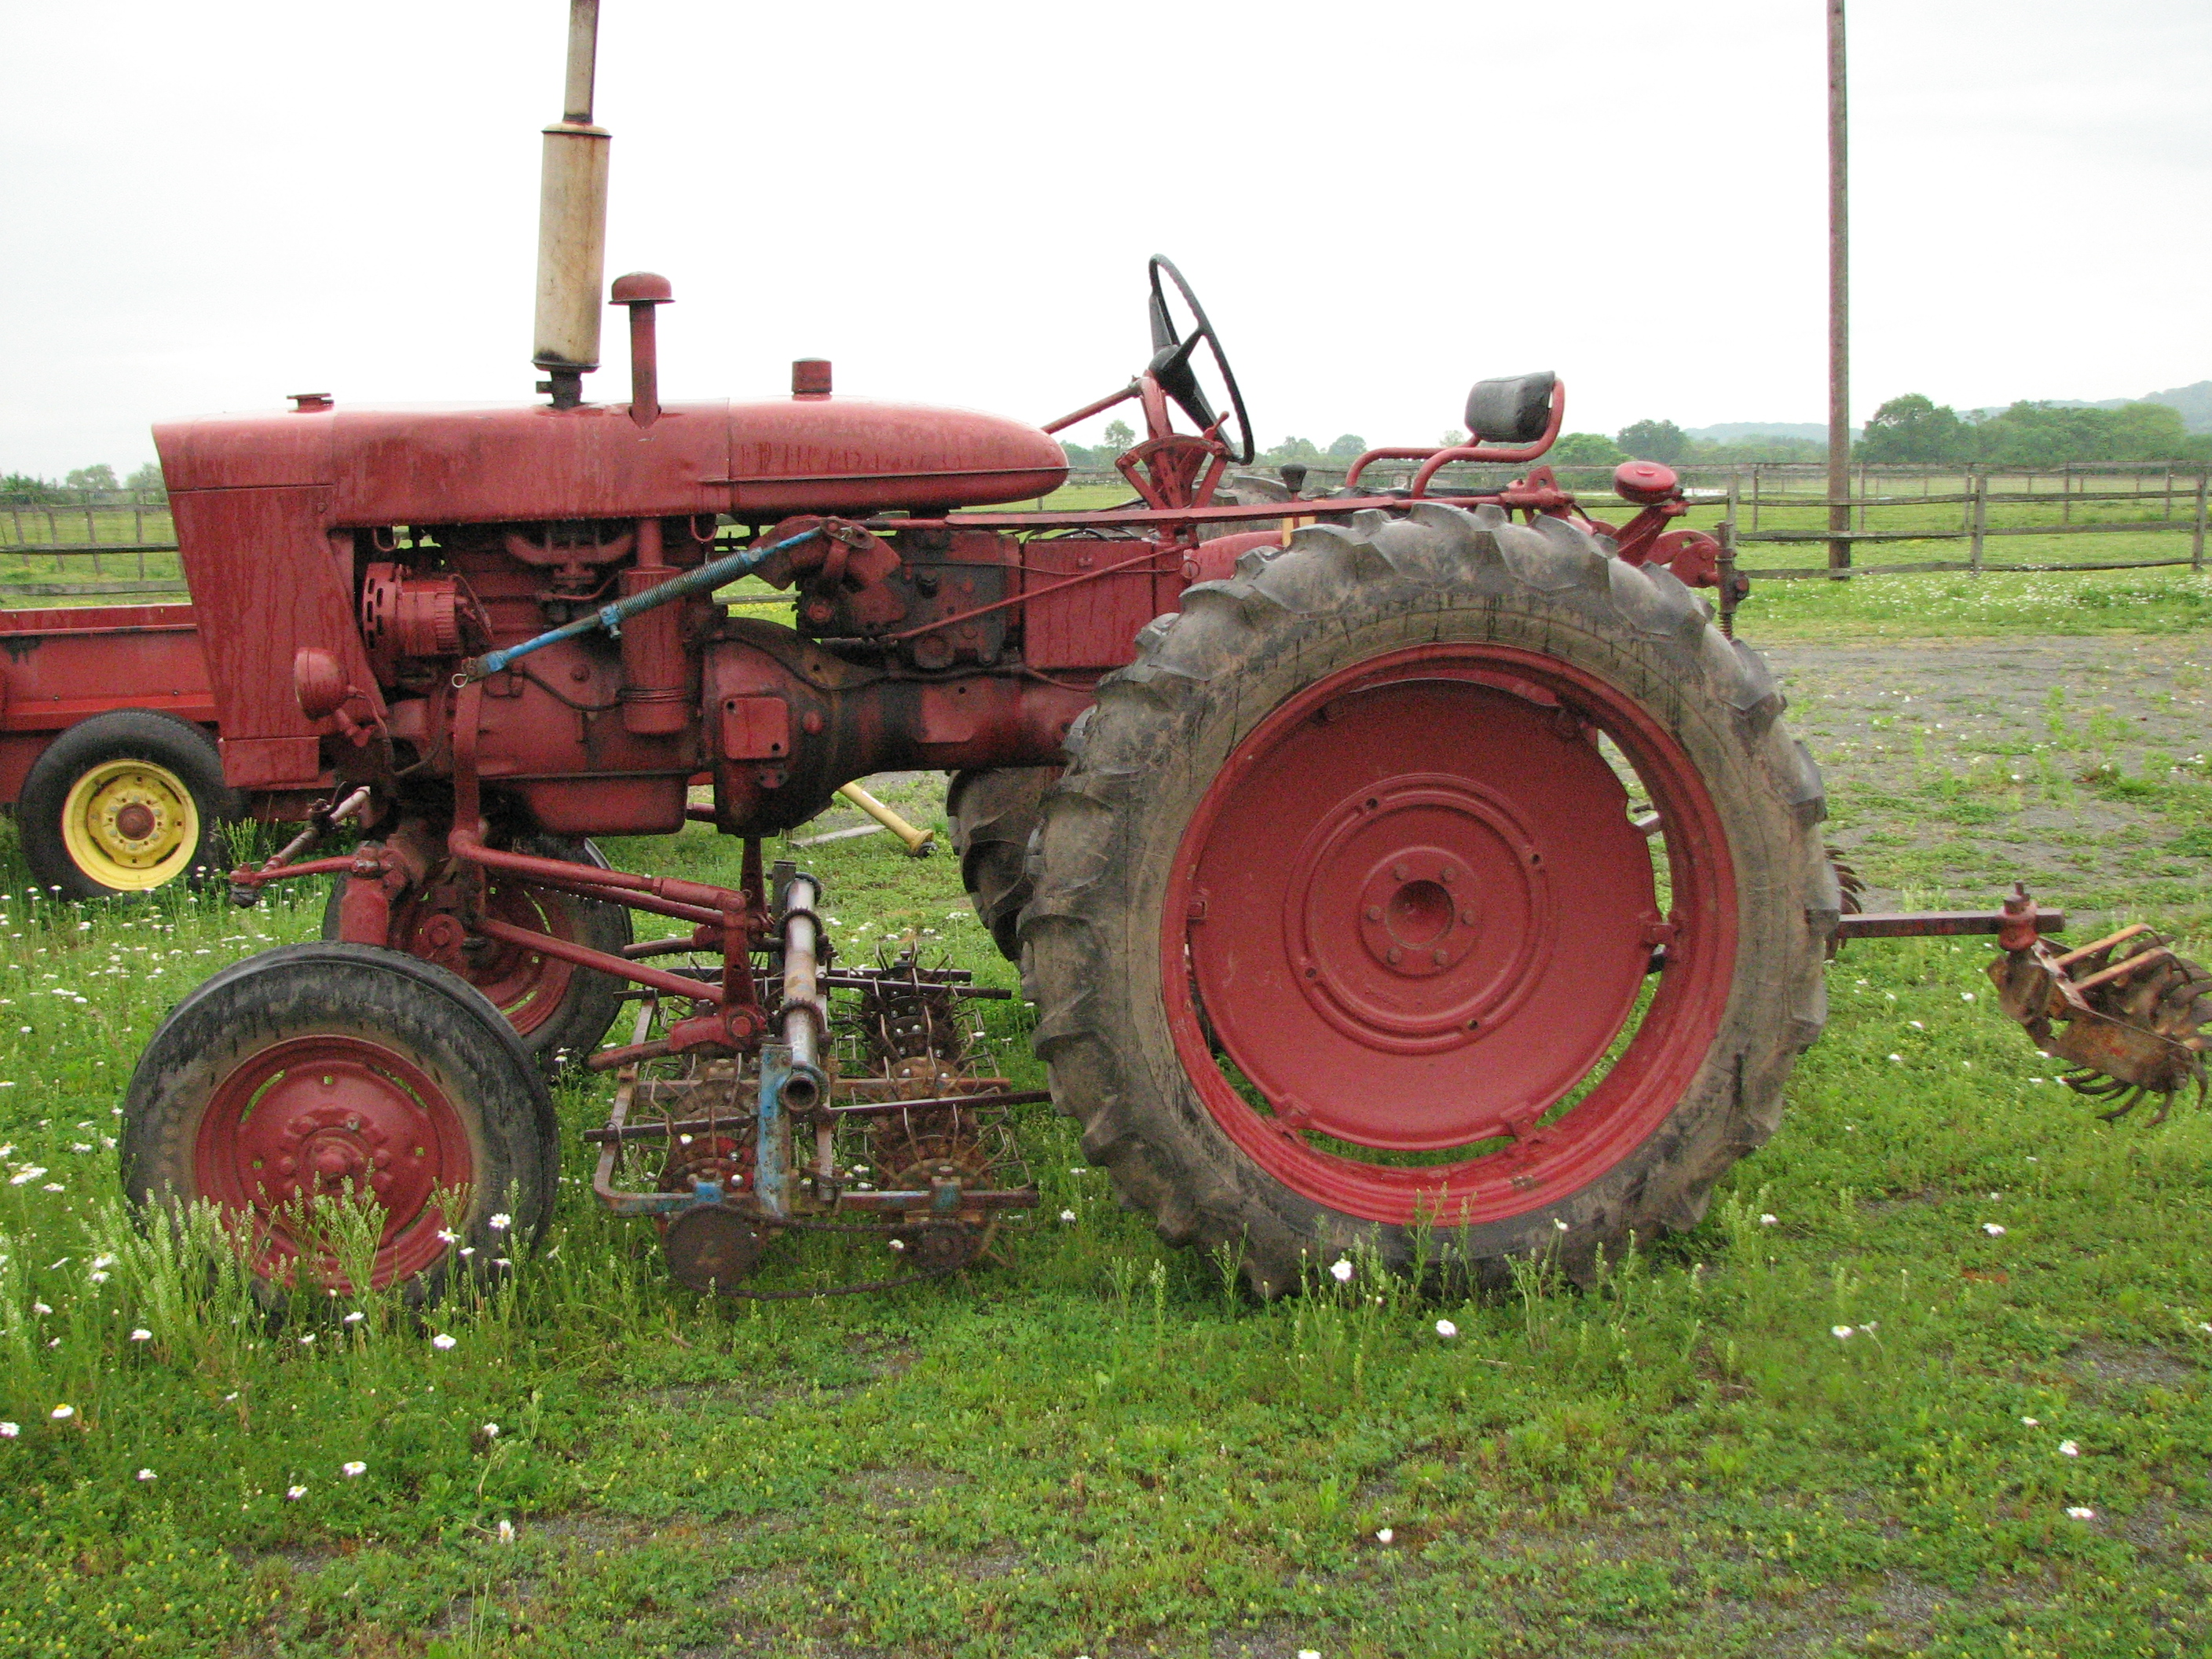 Farmall 140 Tractor : Farmall cultivating tractor chickadee creek farm